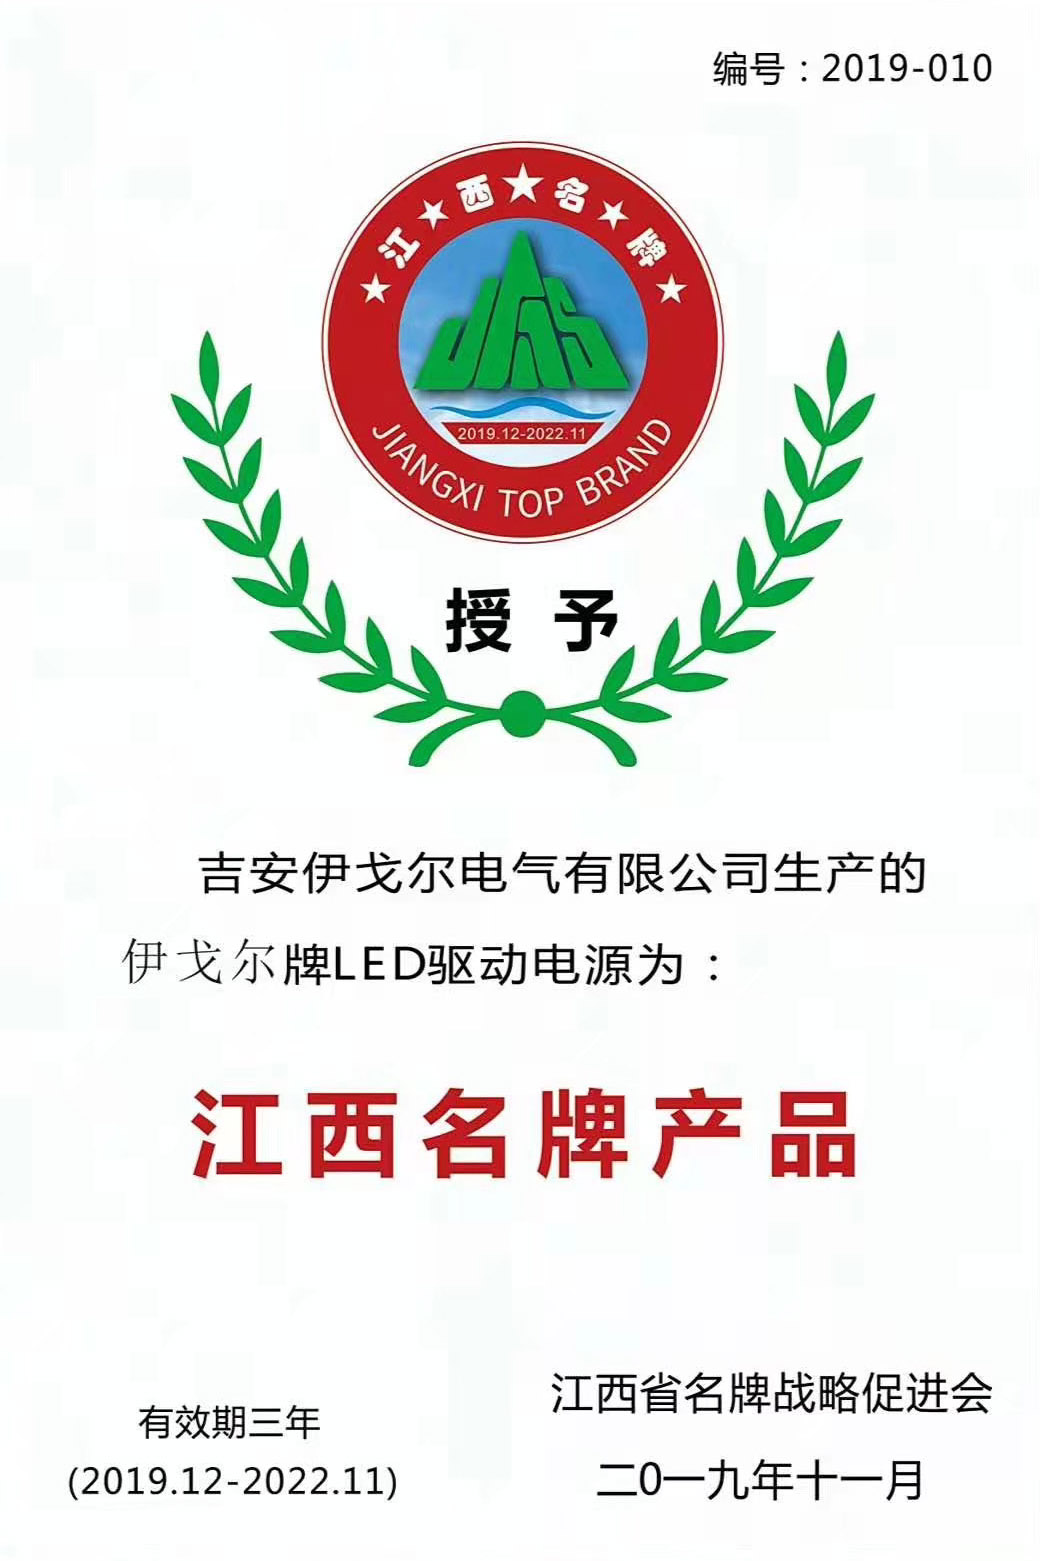 """Good news! Eaglerise LED drive power product won the title of """"JIANGXI TOP BRAND"""""""